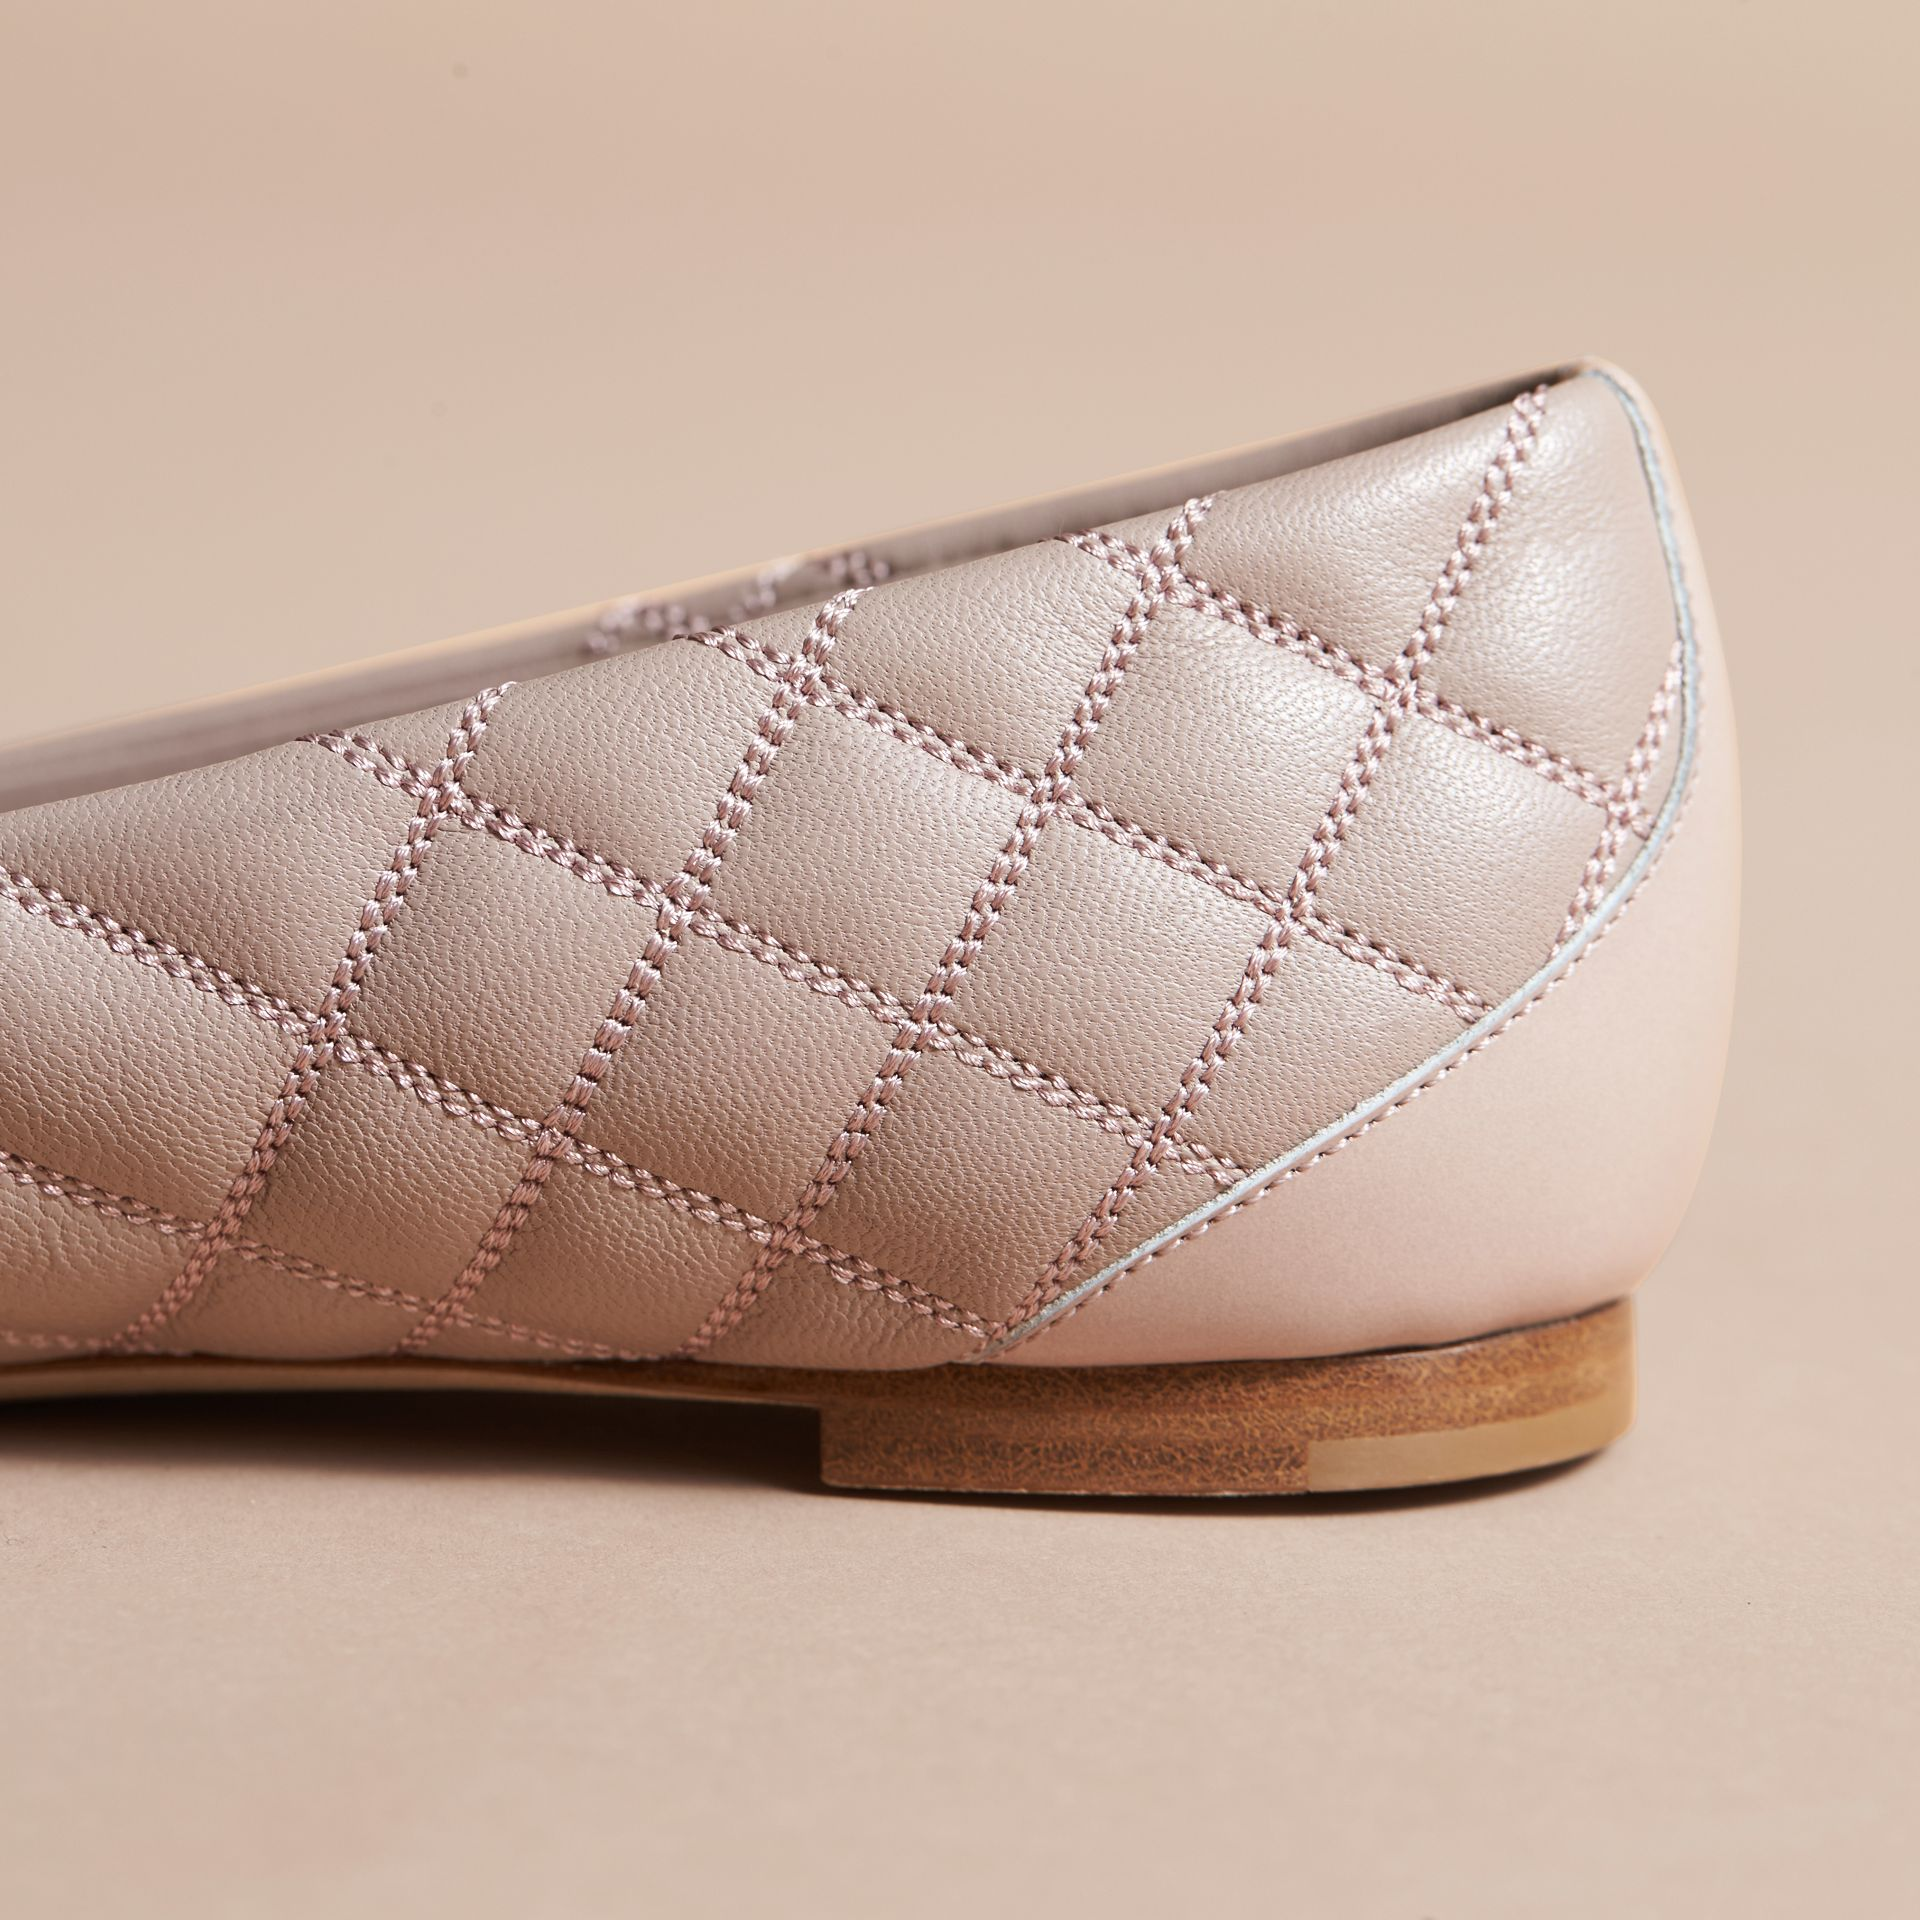 Buckle Detail Quilted Lambskin Leather Ballerinas in Ivory Pink - Women | Burberry - gallery image 5